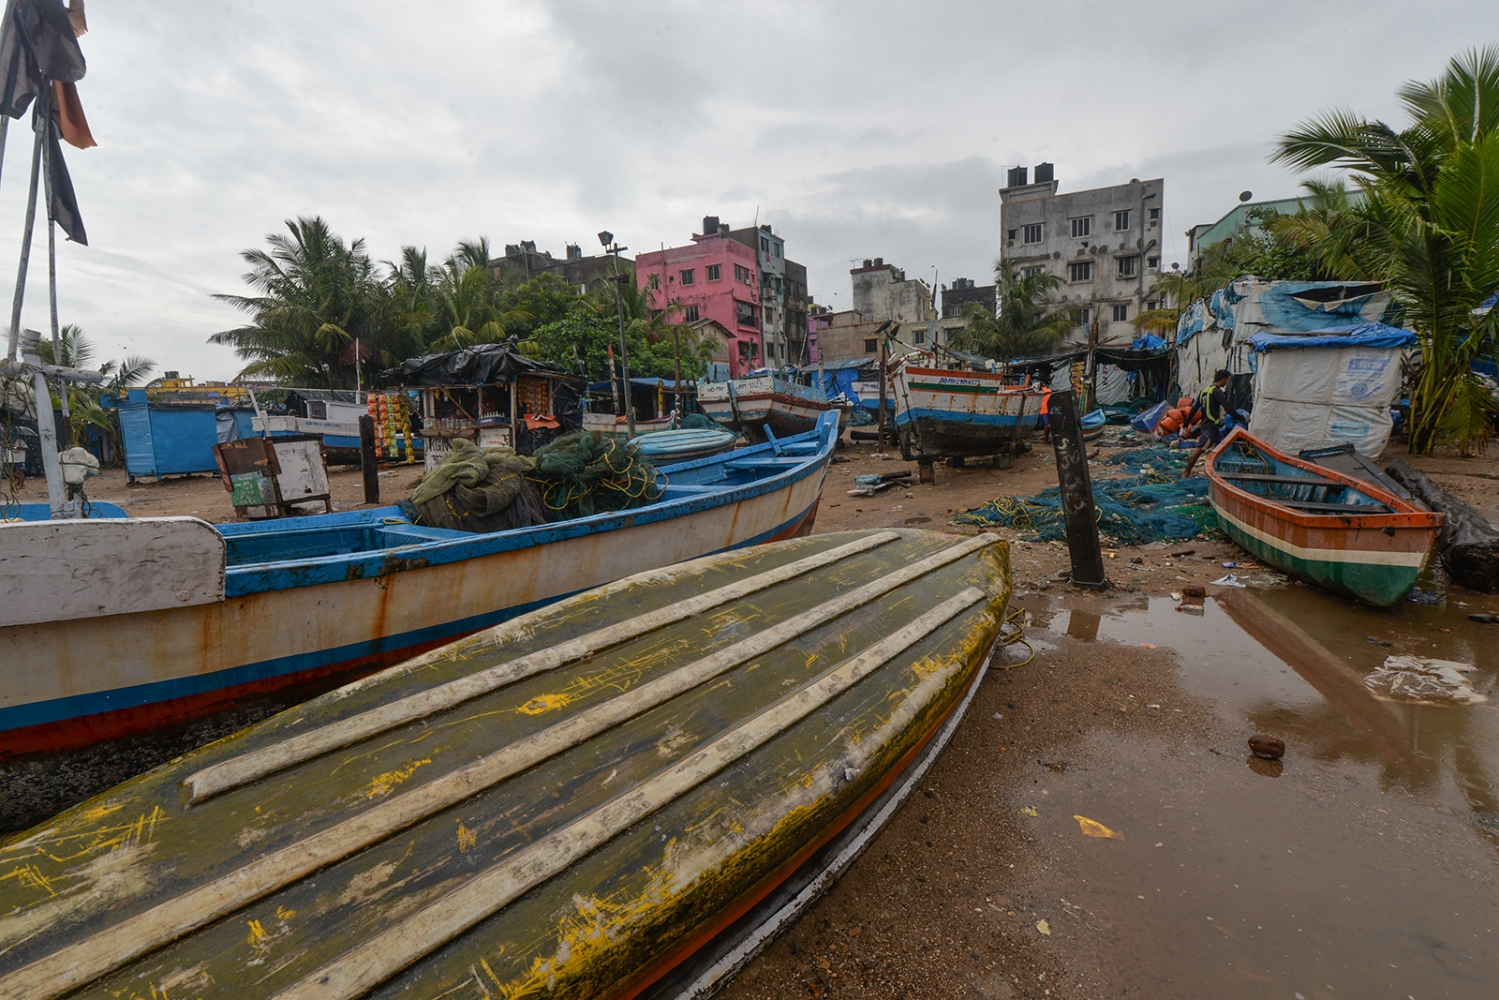 Versova fishing village. Mumbai, India.